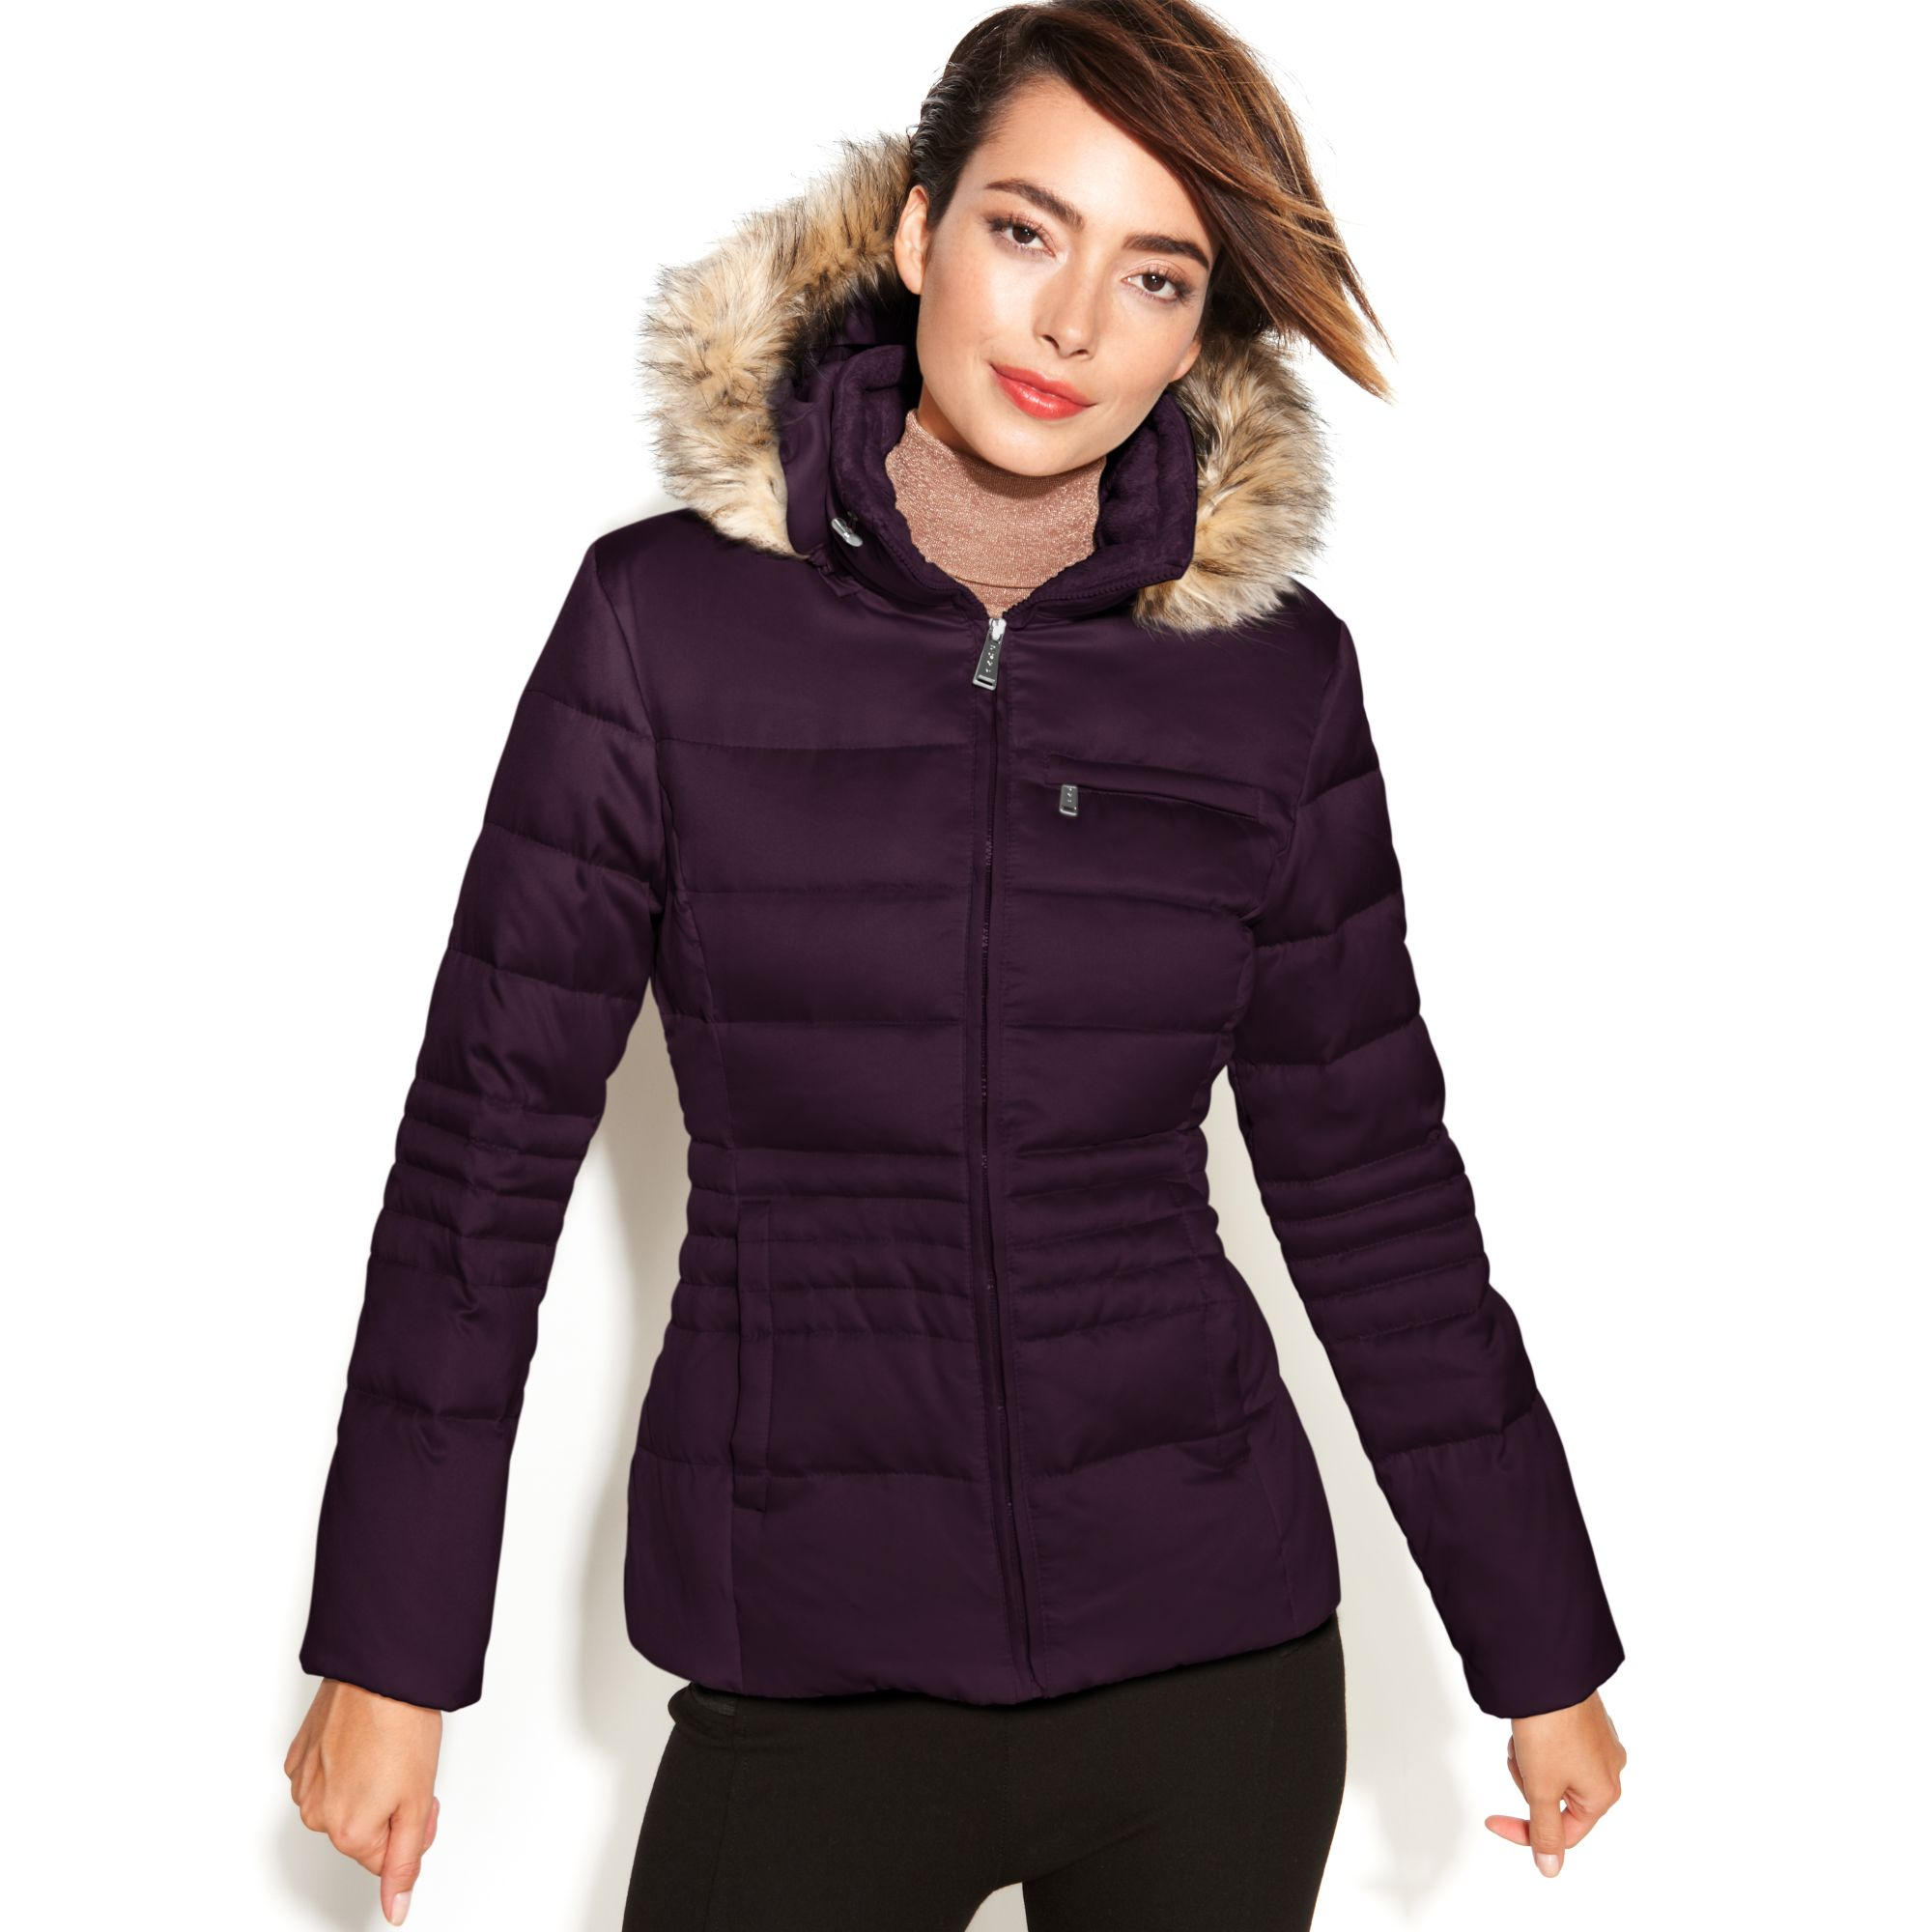 Up to 80% Off DKNY Women's Coat $ Jacket @ 6PM.com